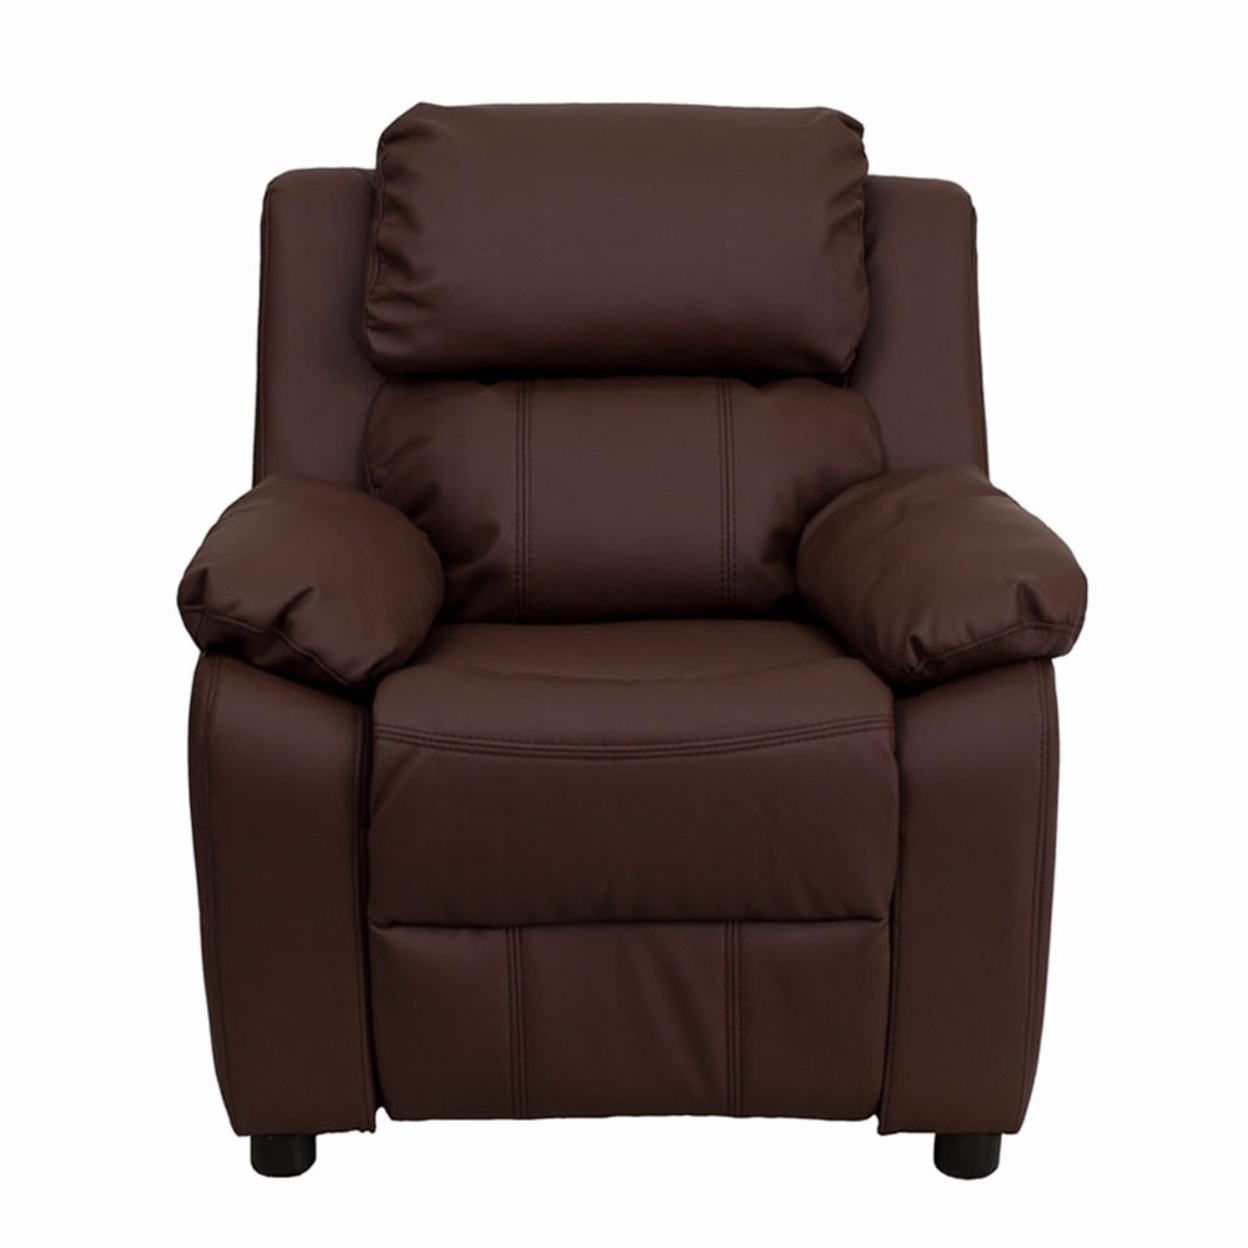 Flash Furniture Deluxe Heavily Padded Contemporary Brown Leather Kids Recliner with Storage Arms [863-Bt-7985-Kid-Brn-Lea-Gg] 59e46012e224613cc06919b1